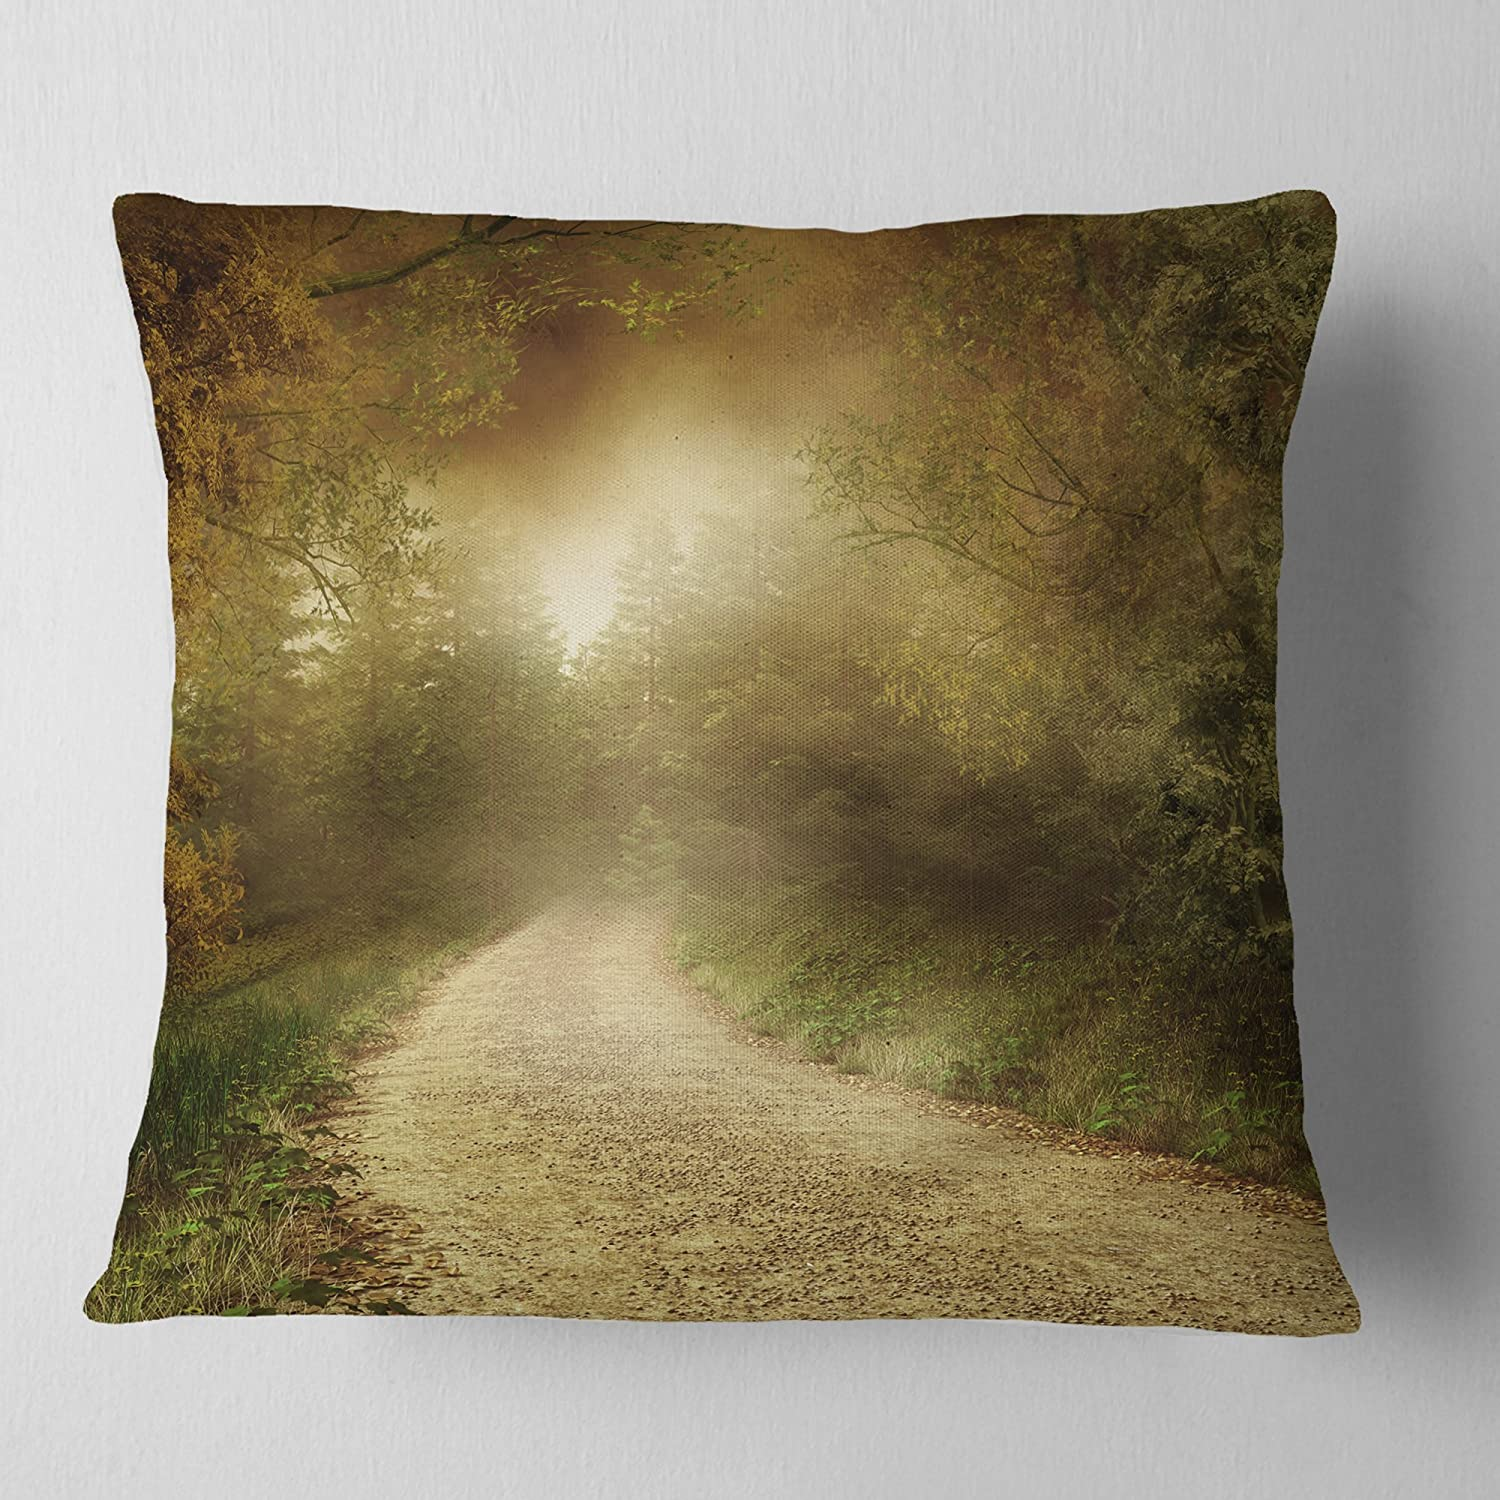 Sofa Throw Pillow 18 x 18 Designart CU9767-18-18 Country Road Through Fall Scenery Landscape Photography Cushion Cover for Living Room